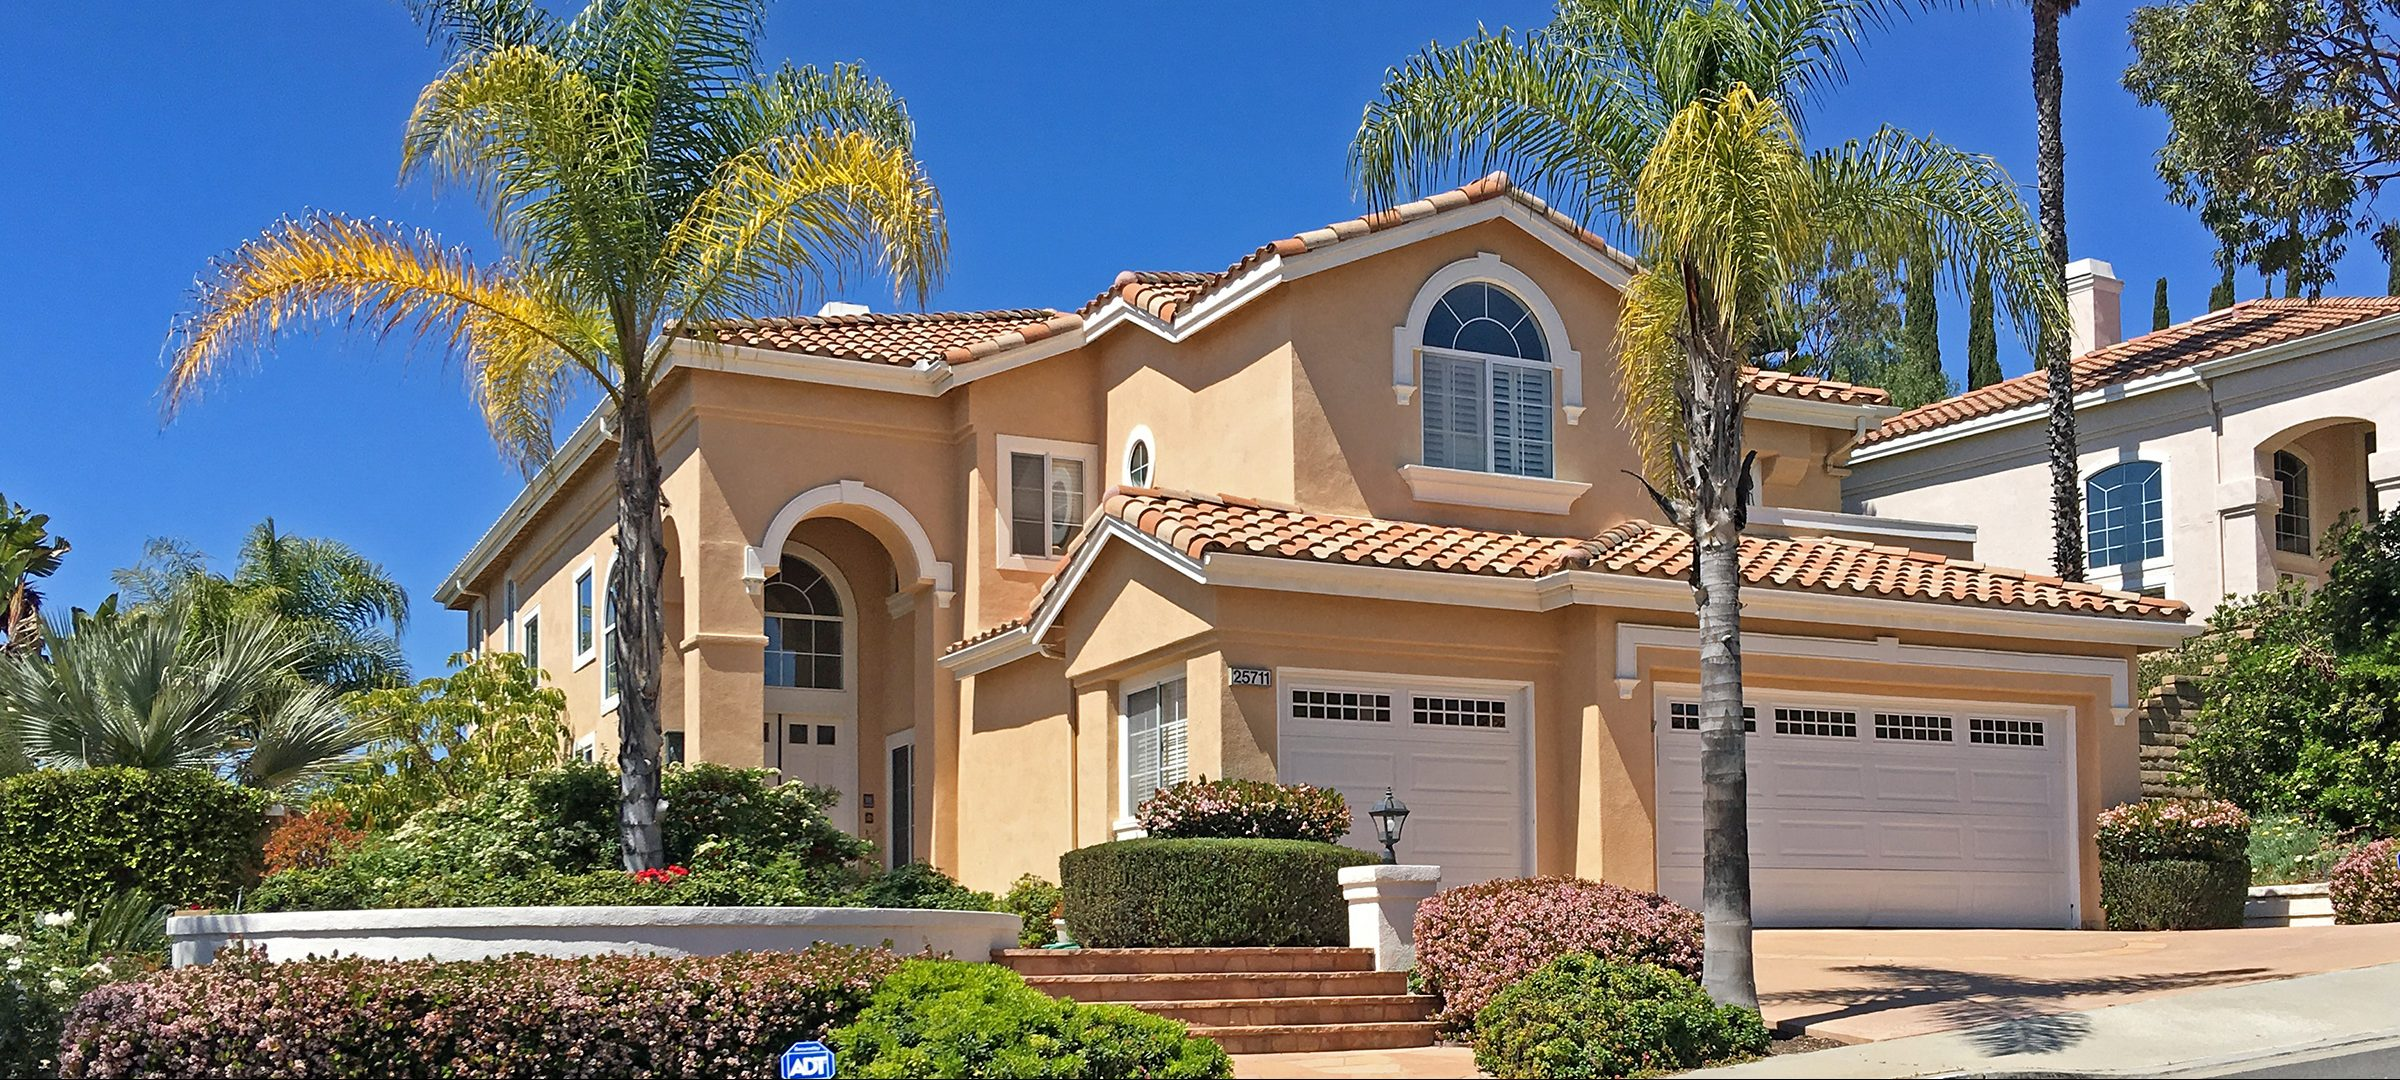 Pacific Hills Homes for Sale in Mission Viejo Jackie Gibbins Real Estate